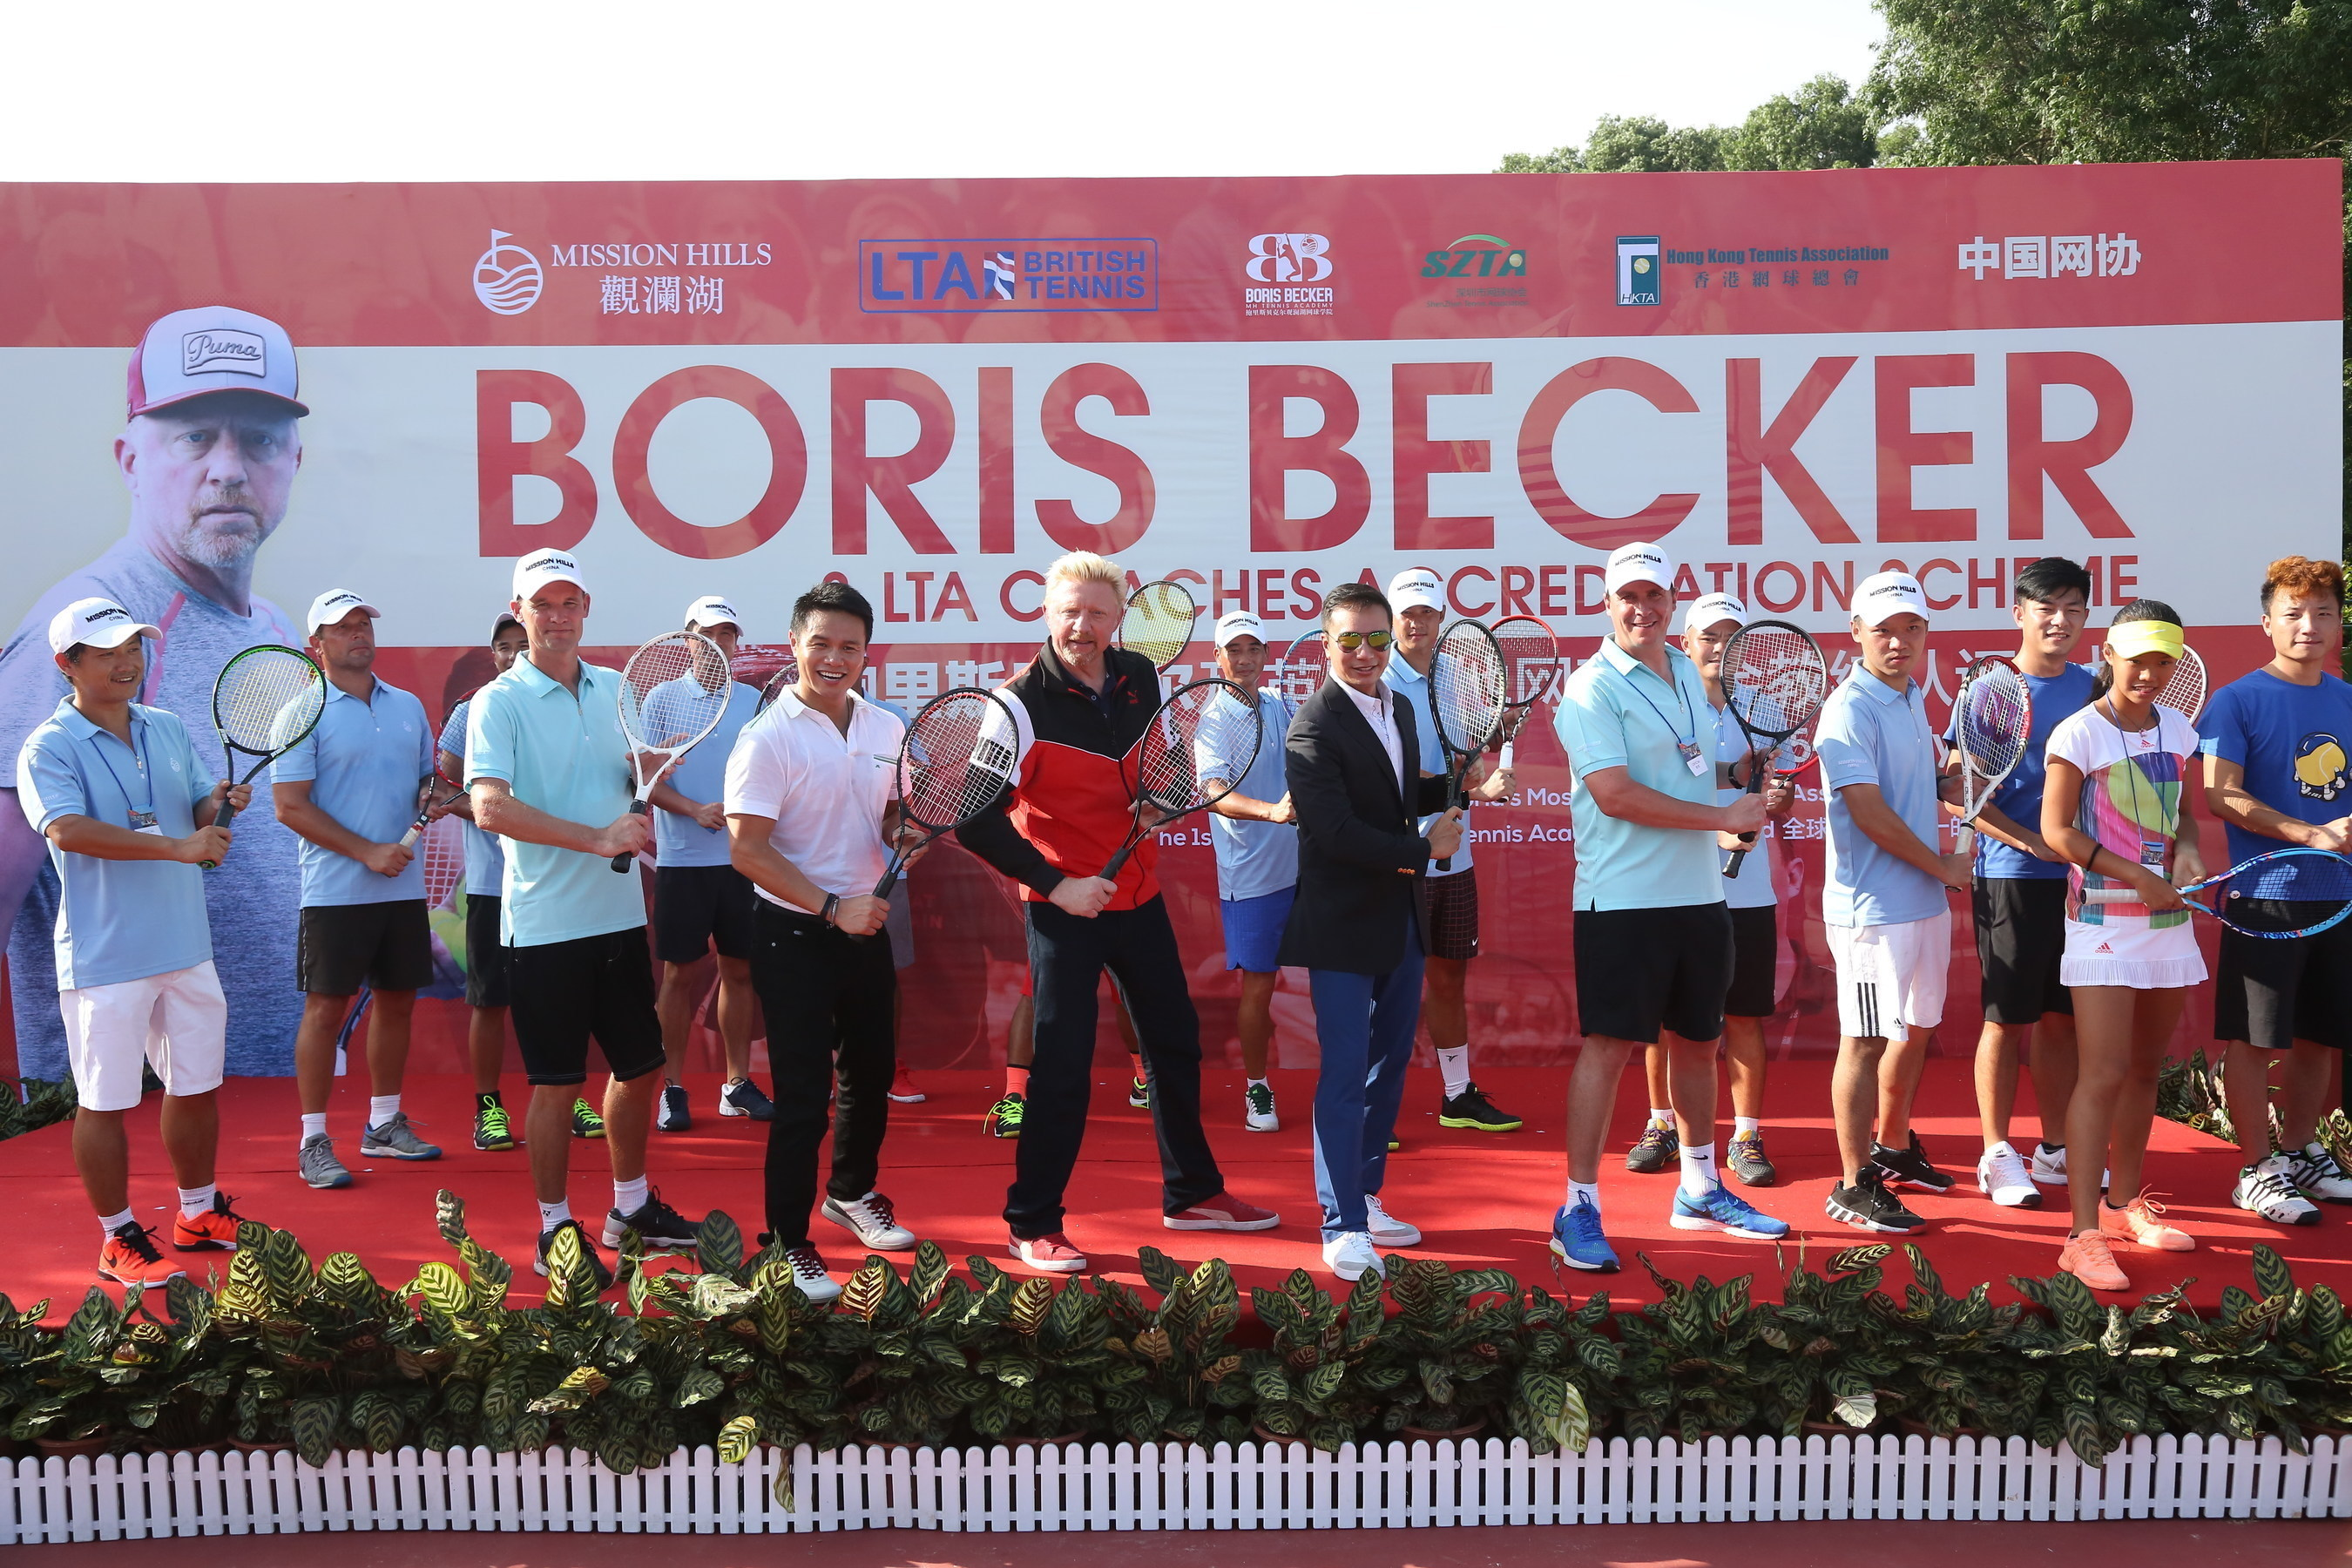 Boris Becker launching the Accreditation Programme with Dr. Ken Chu, Chariman of Mission Hills Group (Line 1, Left 3) ; Mr.Tenniel Chu,Vice Chairman of Mission Hills Group (Line 1, Right 4), Dan Thorp(Line 1, Right 3), LTA's Head of Coach Development and coaches.